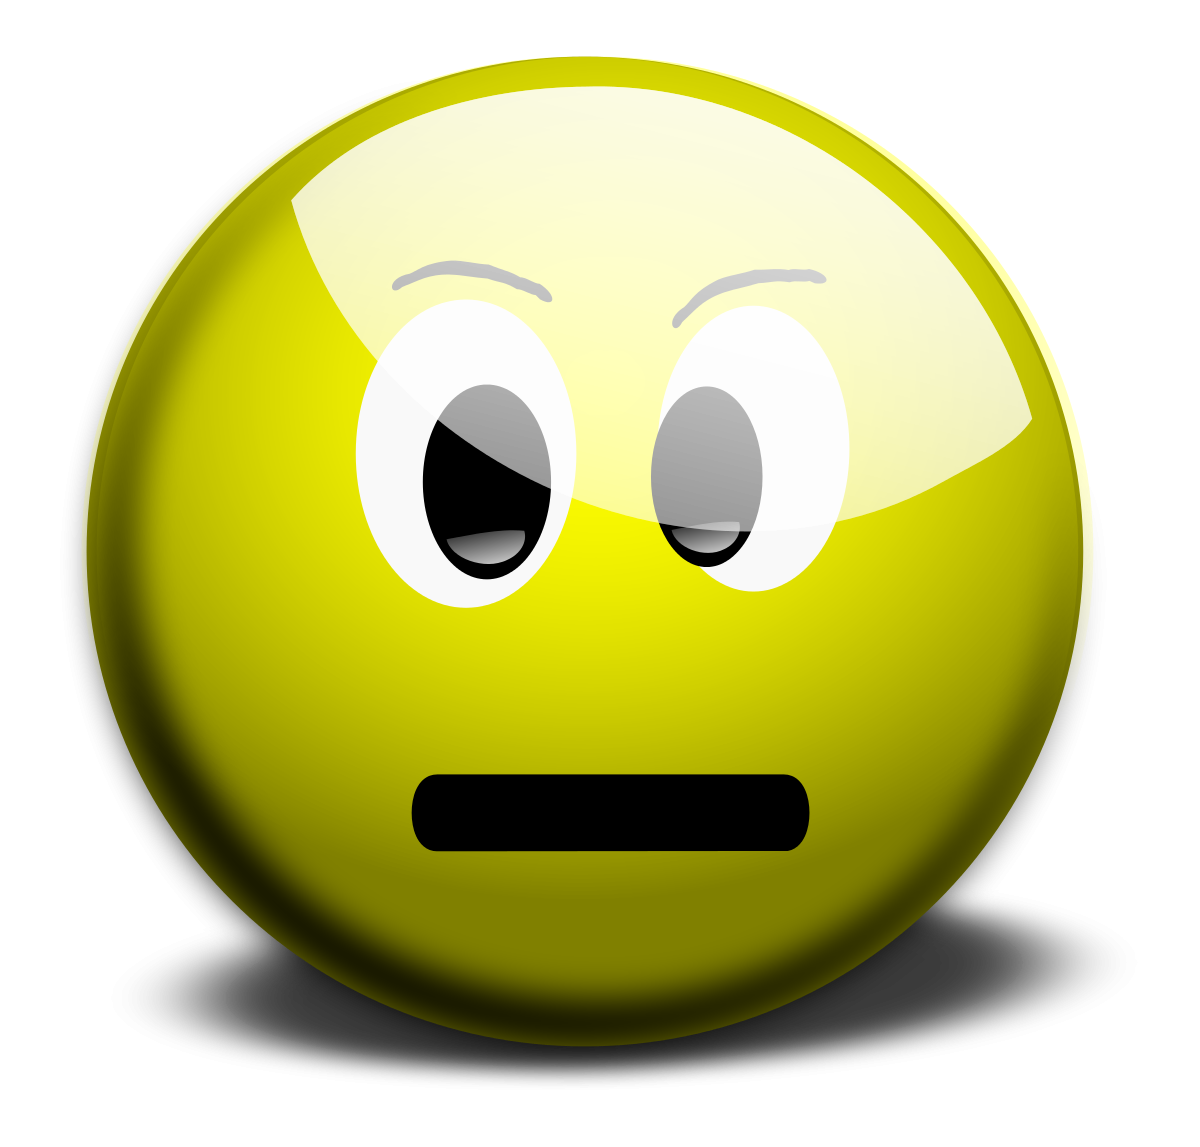 picture royalty free stock Smiley jokingart com thinking. Yes clipart smily face